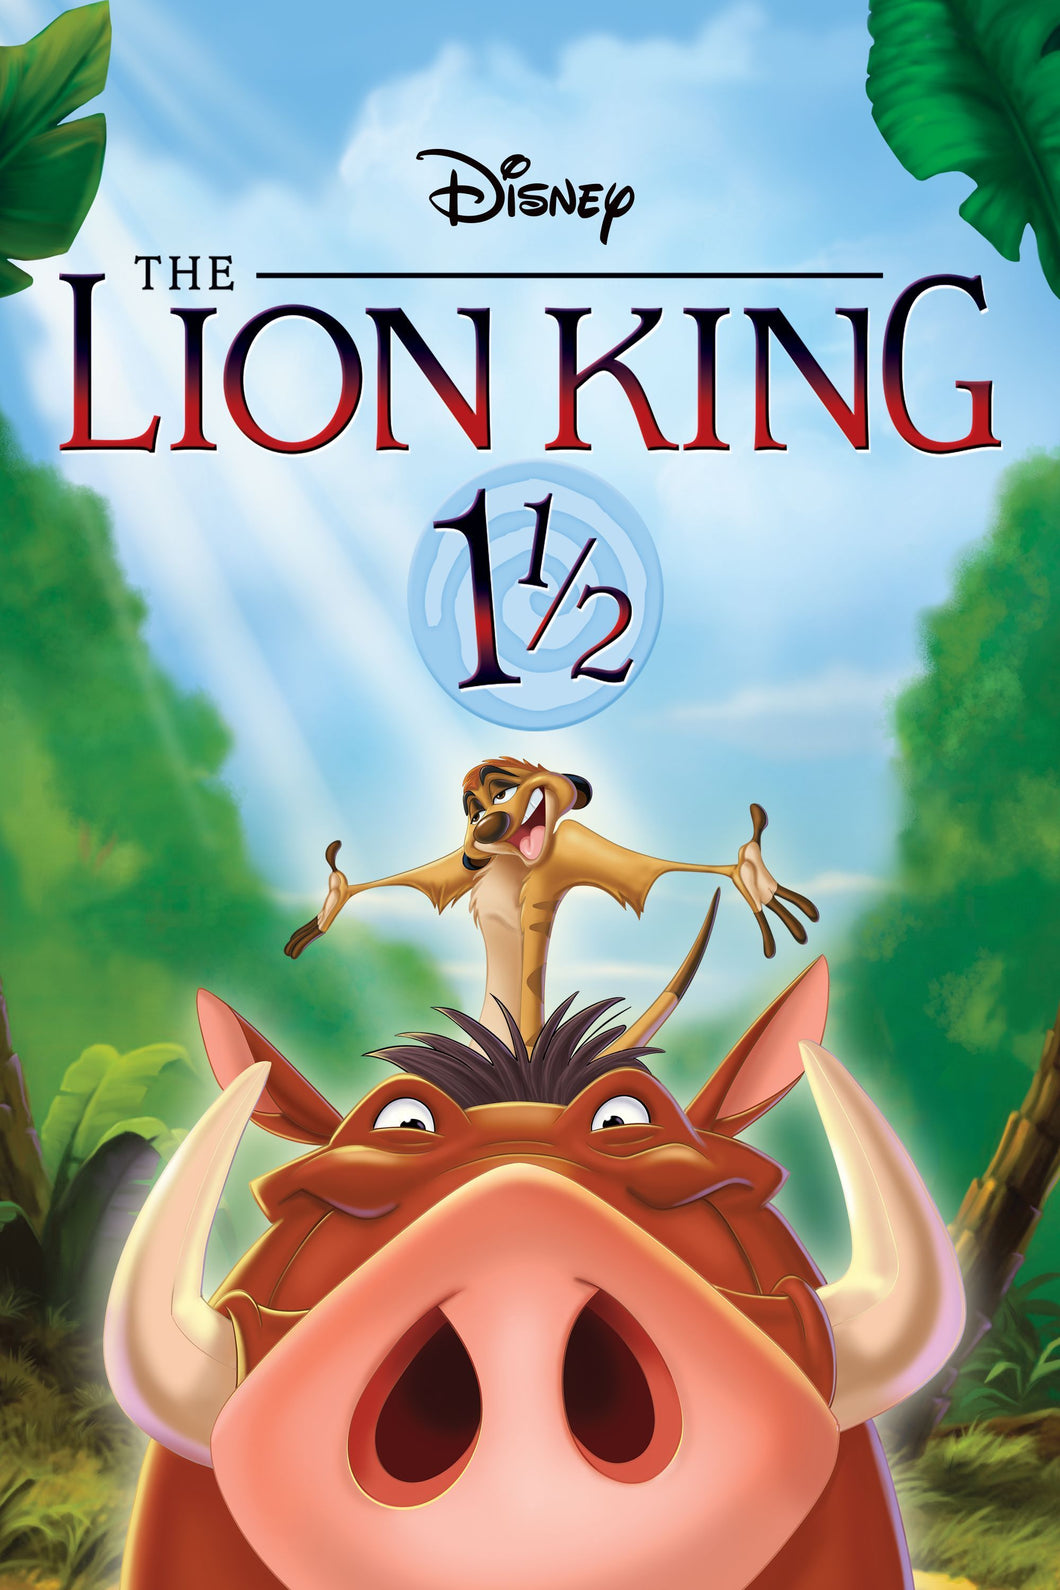 The Lion King 1 1/2 | HD Movies Anywhere Code Ports to Vudu, iTunes, GP - Movie Sometimes